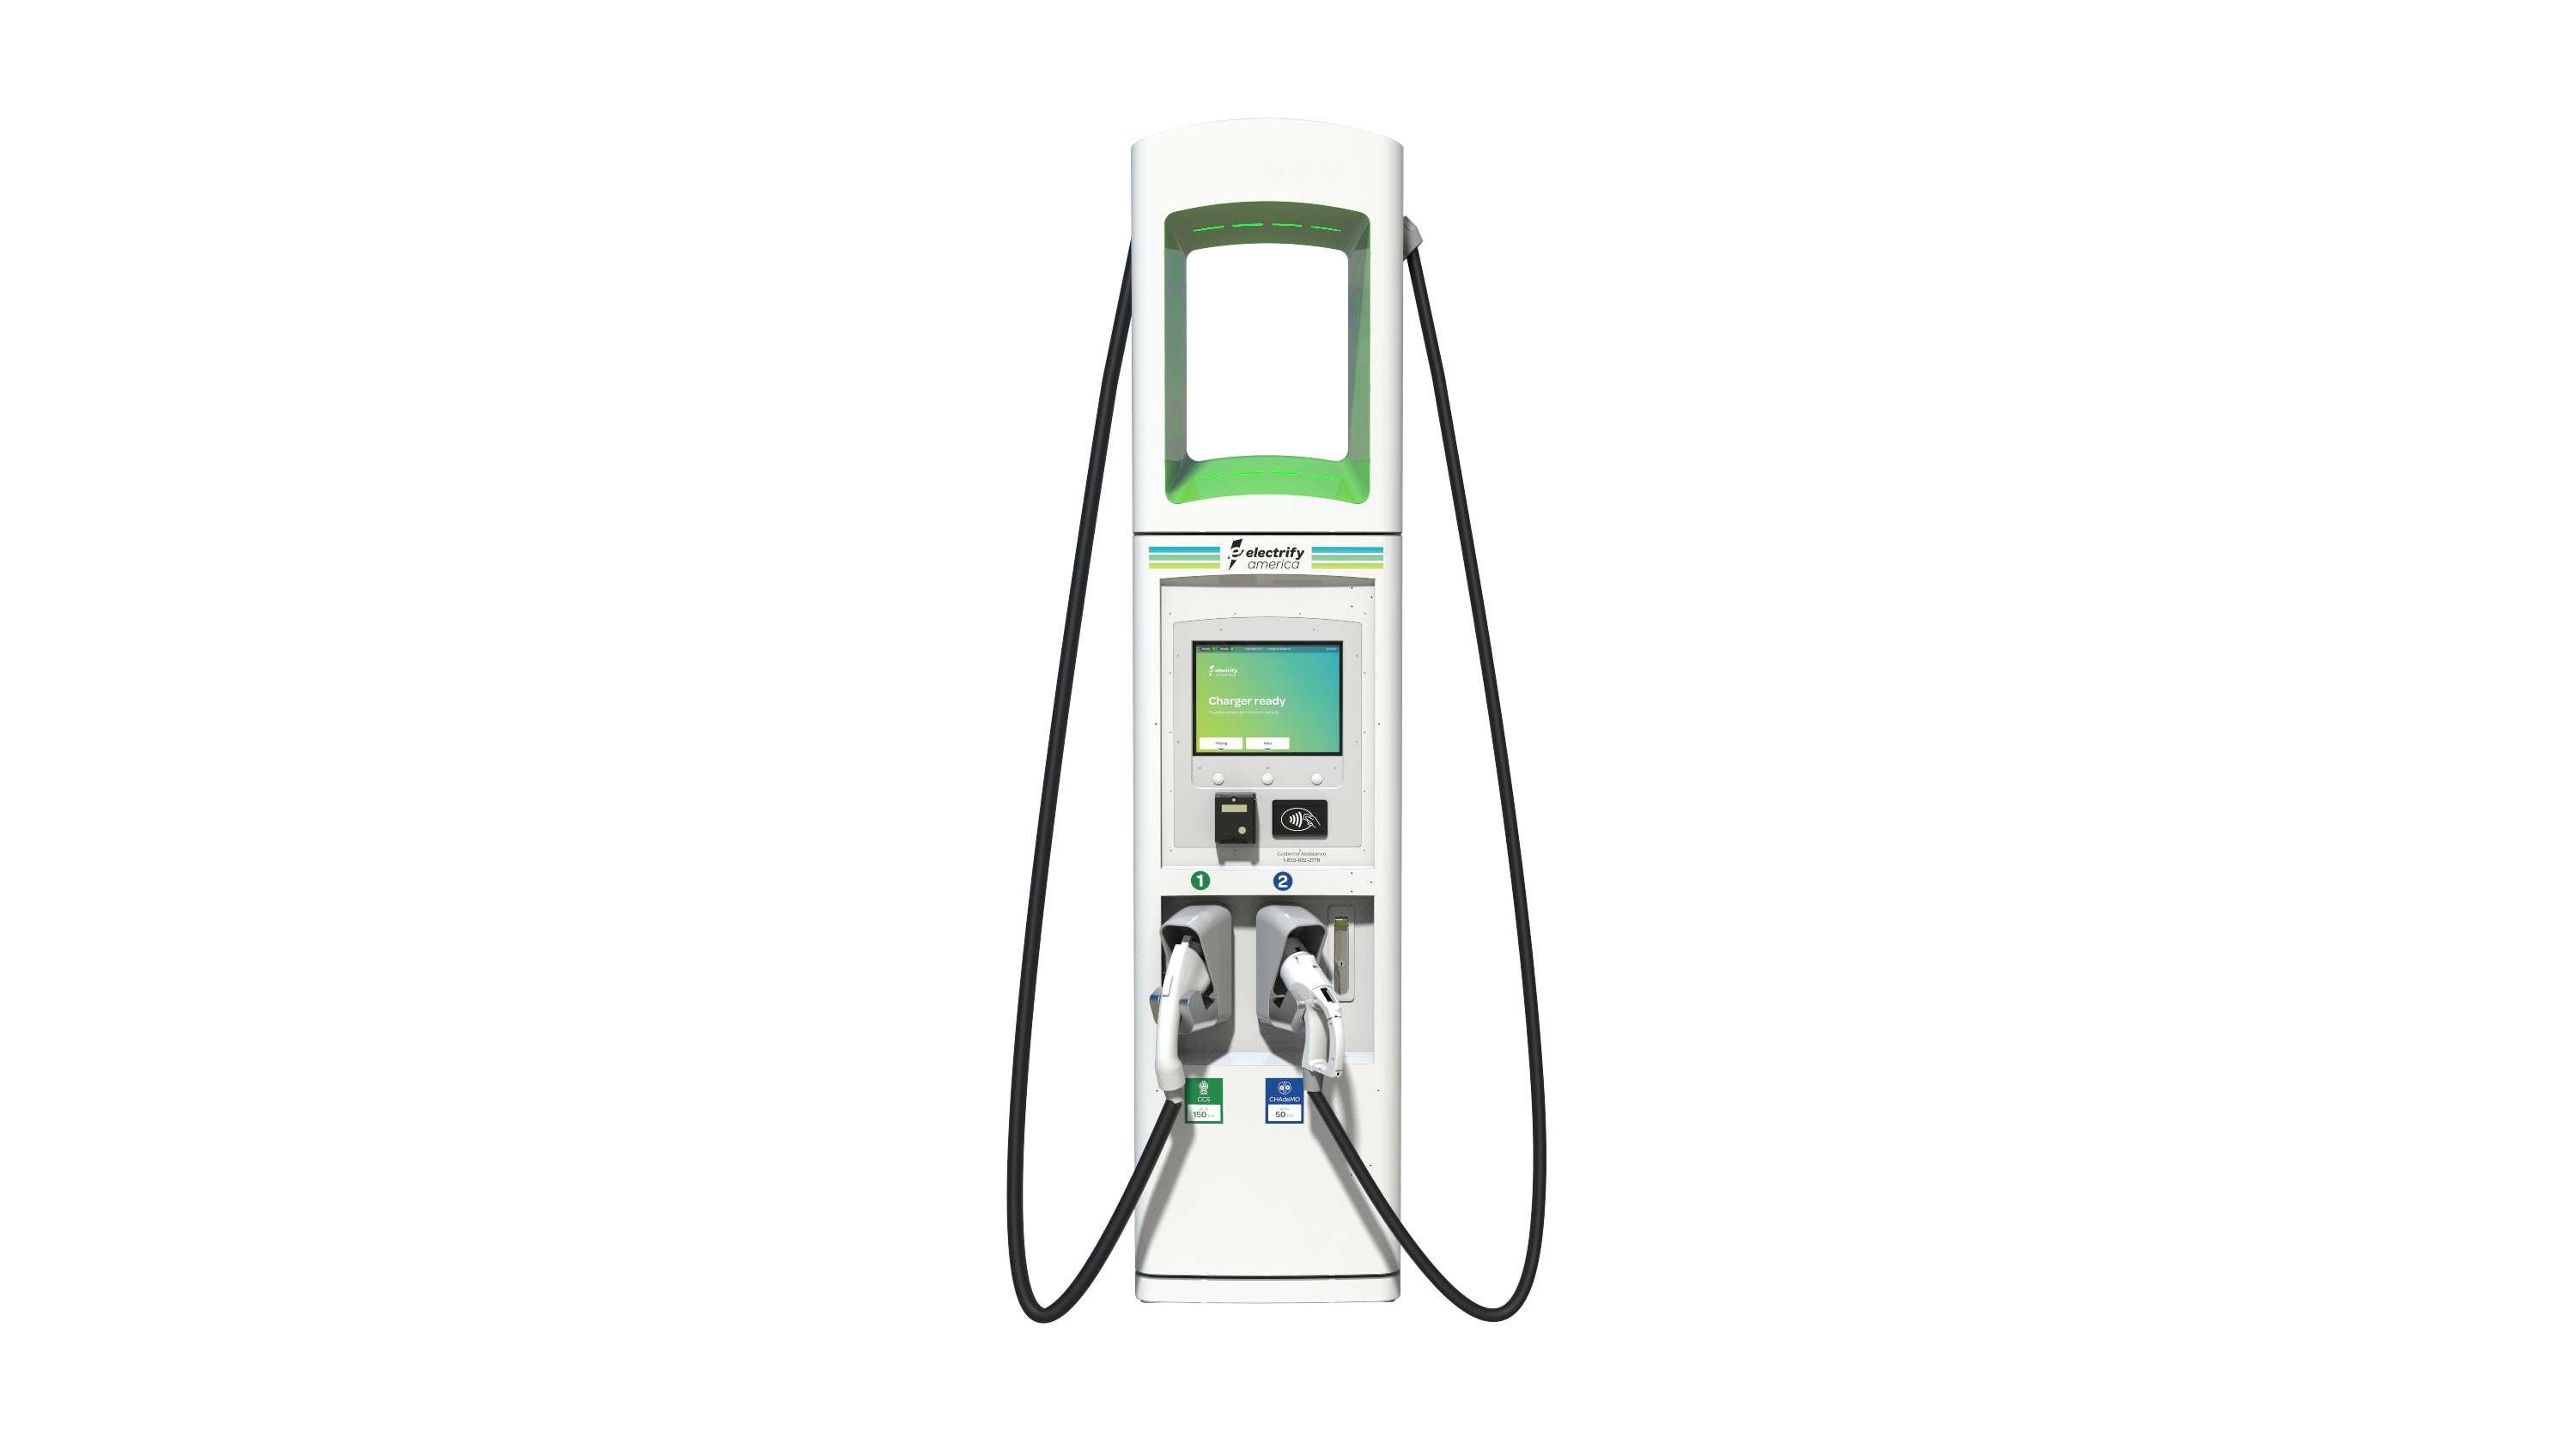 Electrify America Charger By Btc Power Electric Revs